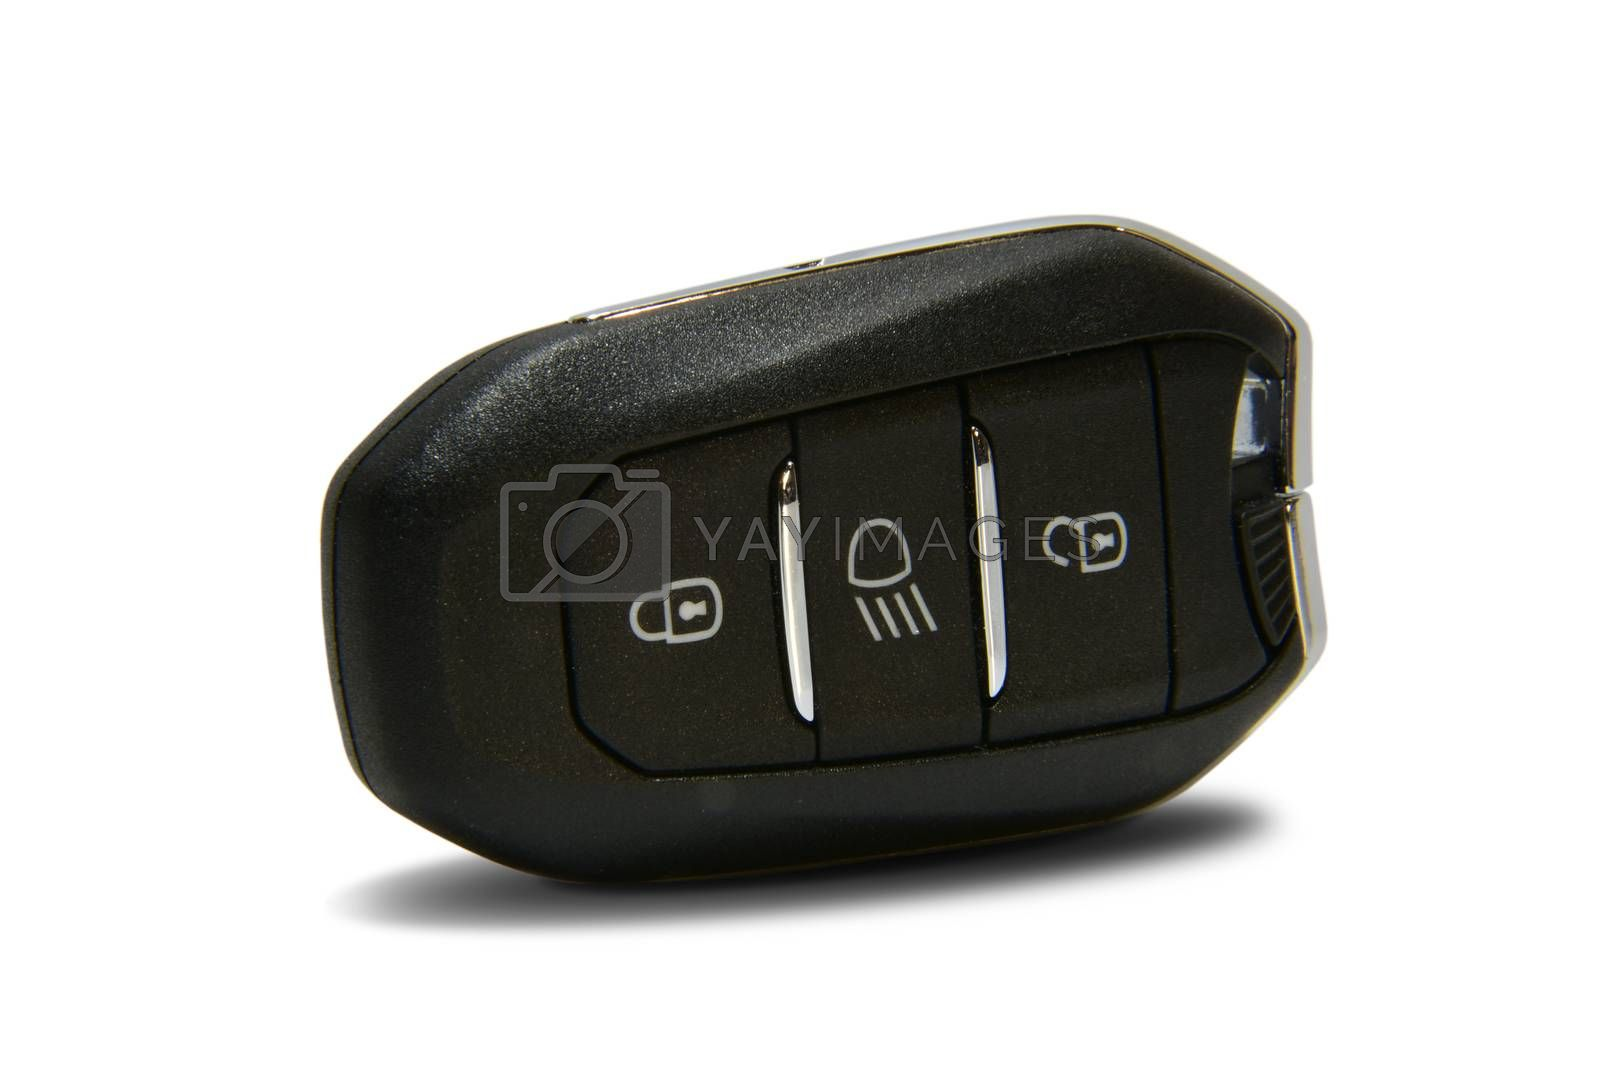 Royalty free image of car key with remote central locking by aselsa